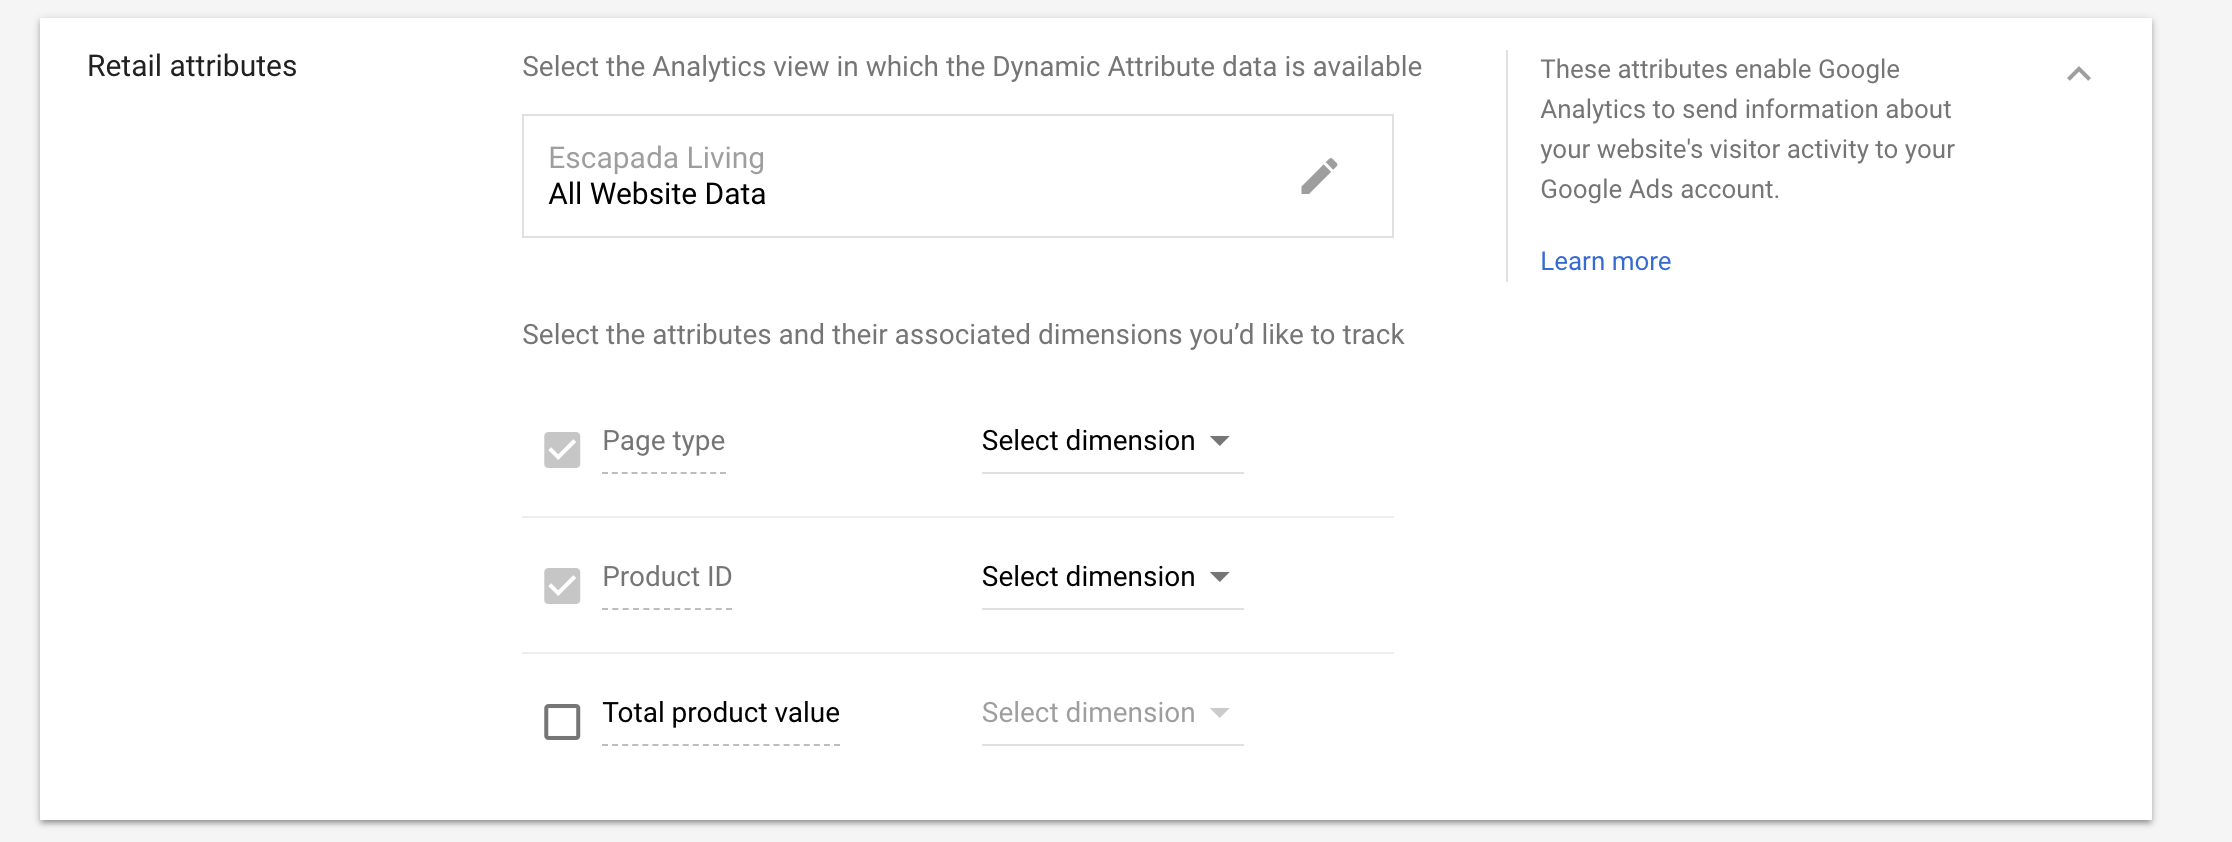 adwords google analytics retail attributes